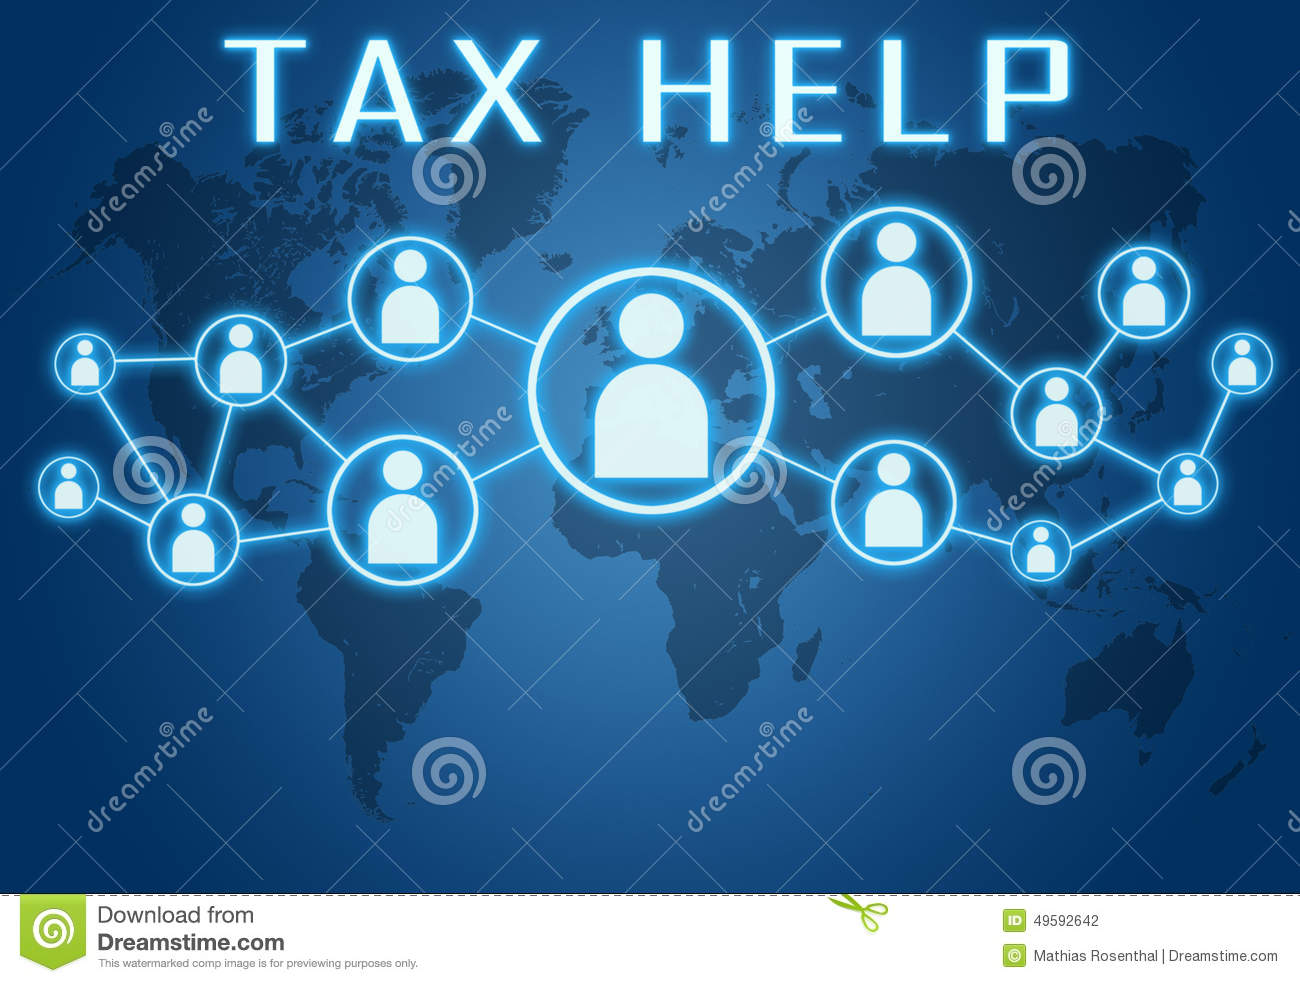 Tax Help concept on blue background with world map and social icons.